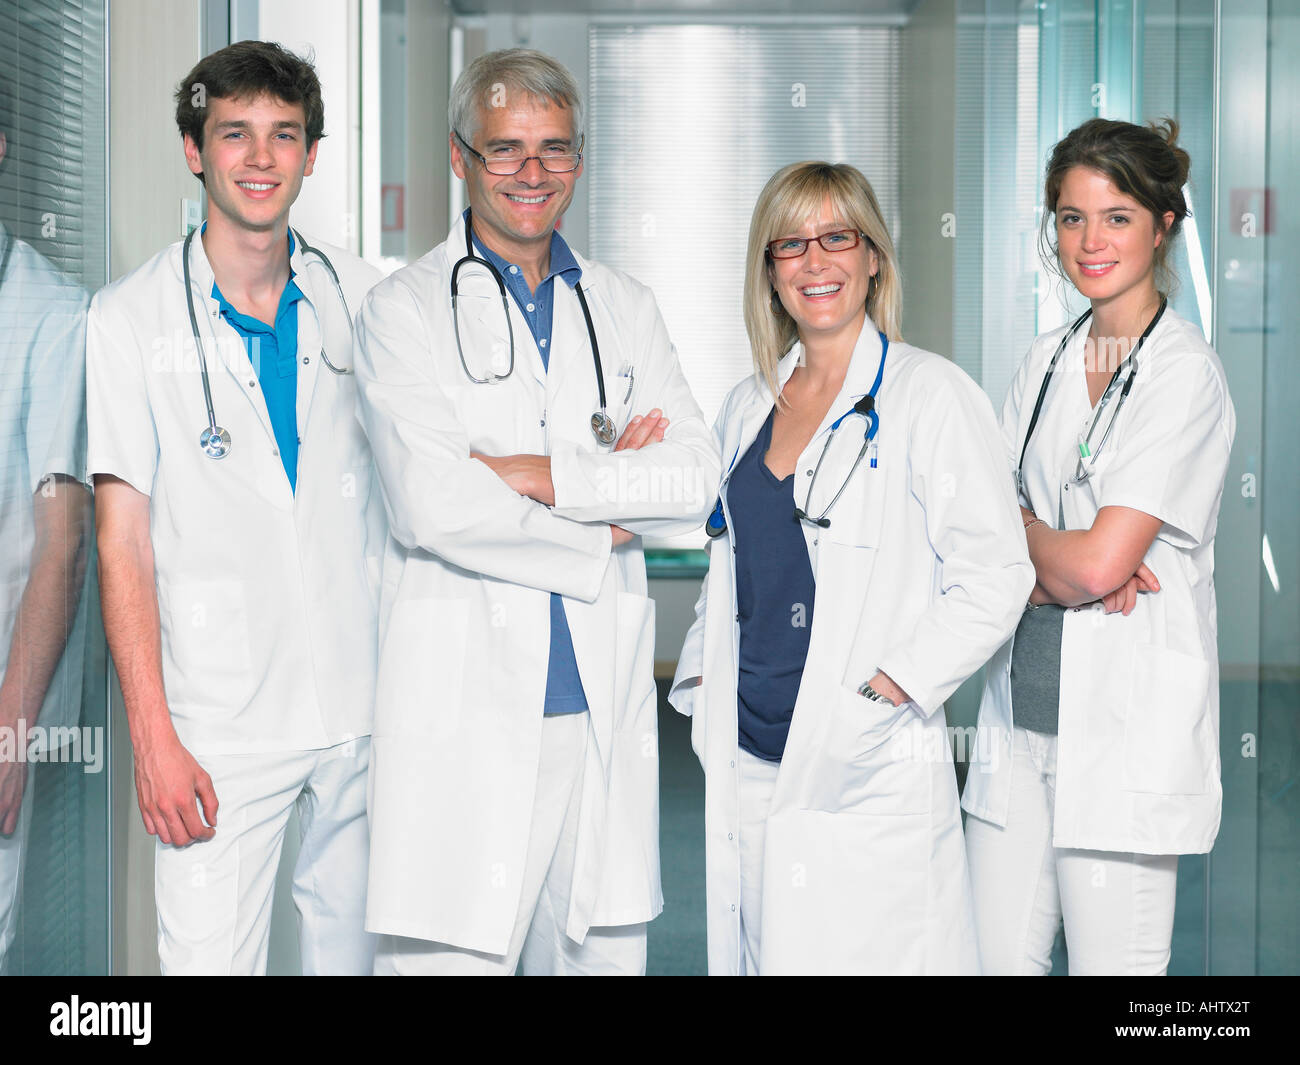 Group shot of four doctors in hospital lobby. - Stock Image